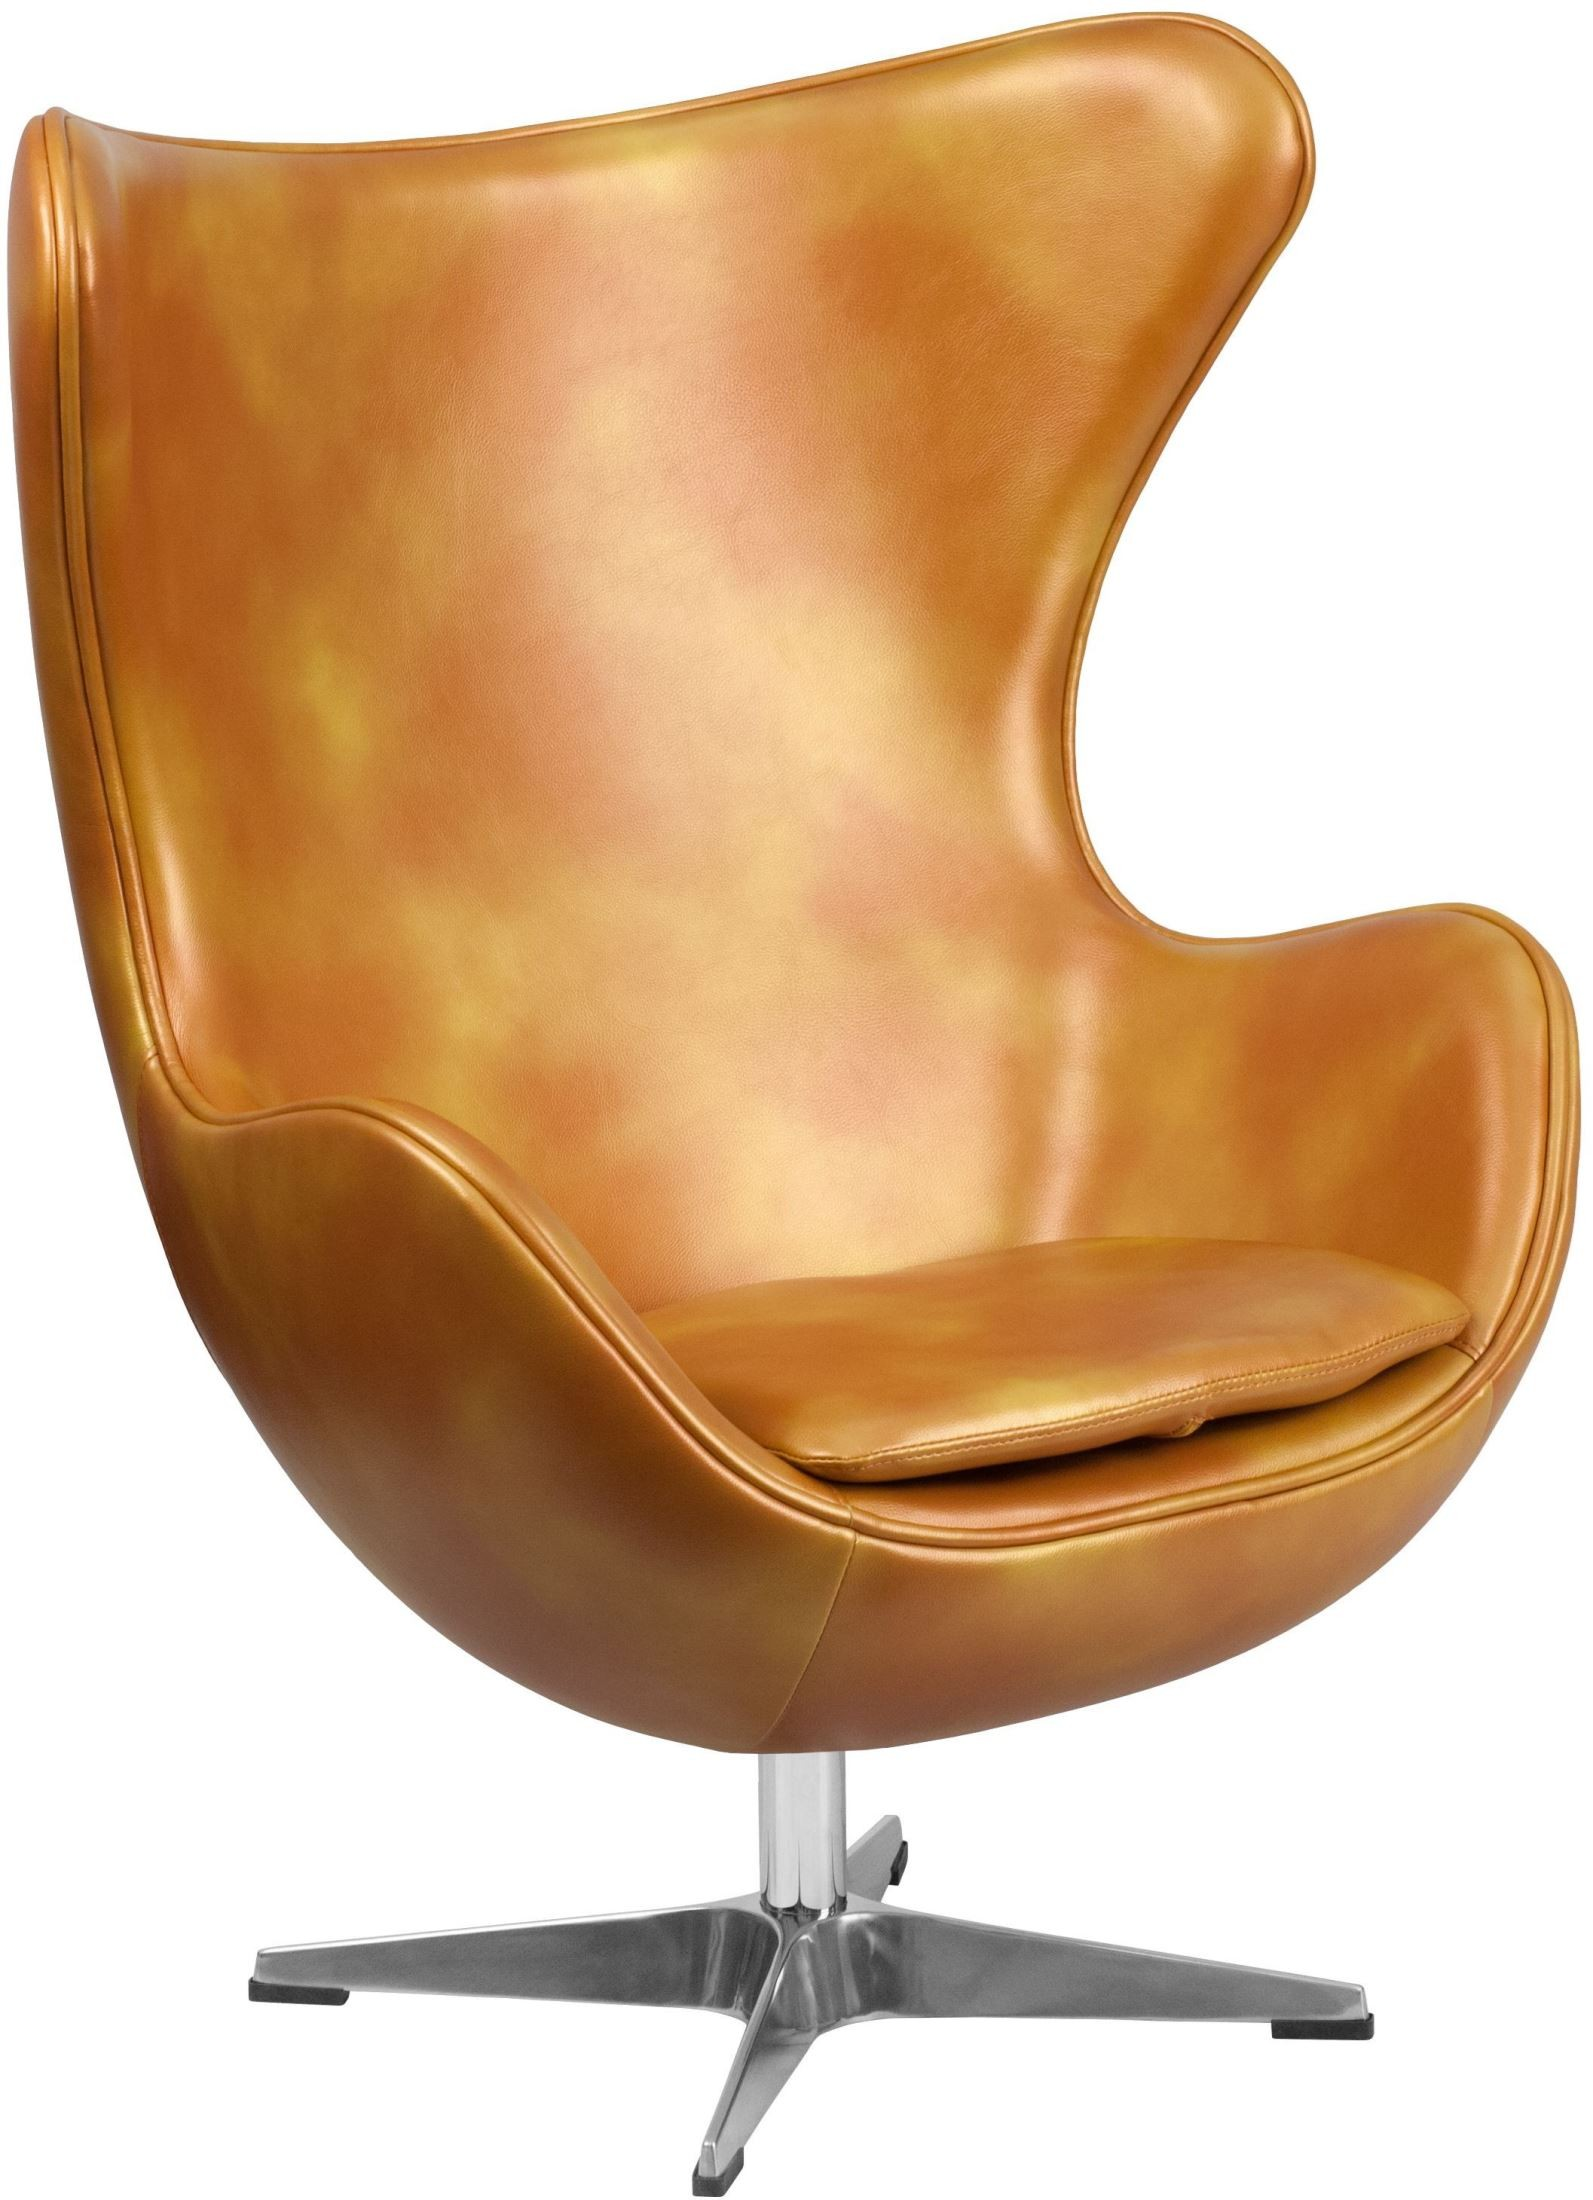 Used Egg Chair Gold Leather Egg Chair With Tilt Lock Mechanism From